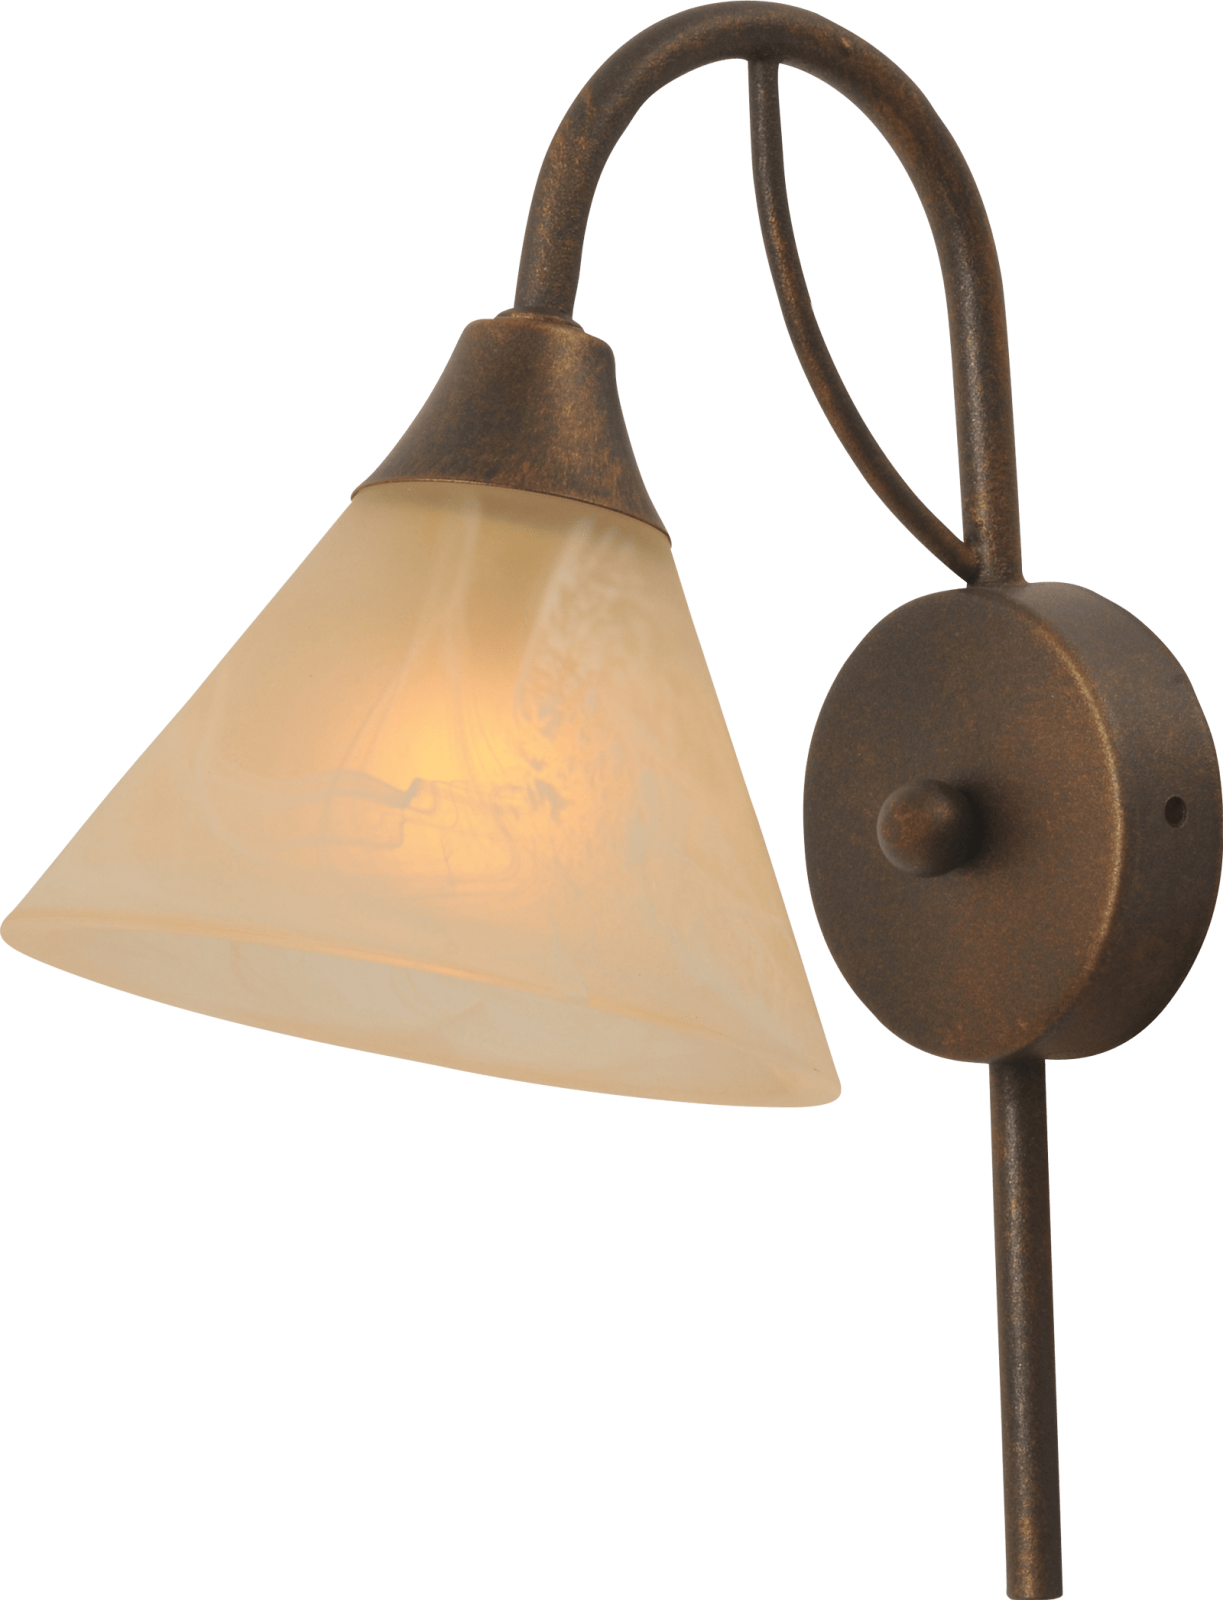 Torcello WL TORCELLO 1LIGHT PATINA DOWNLIGHT